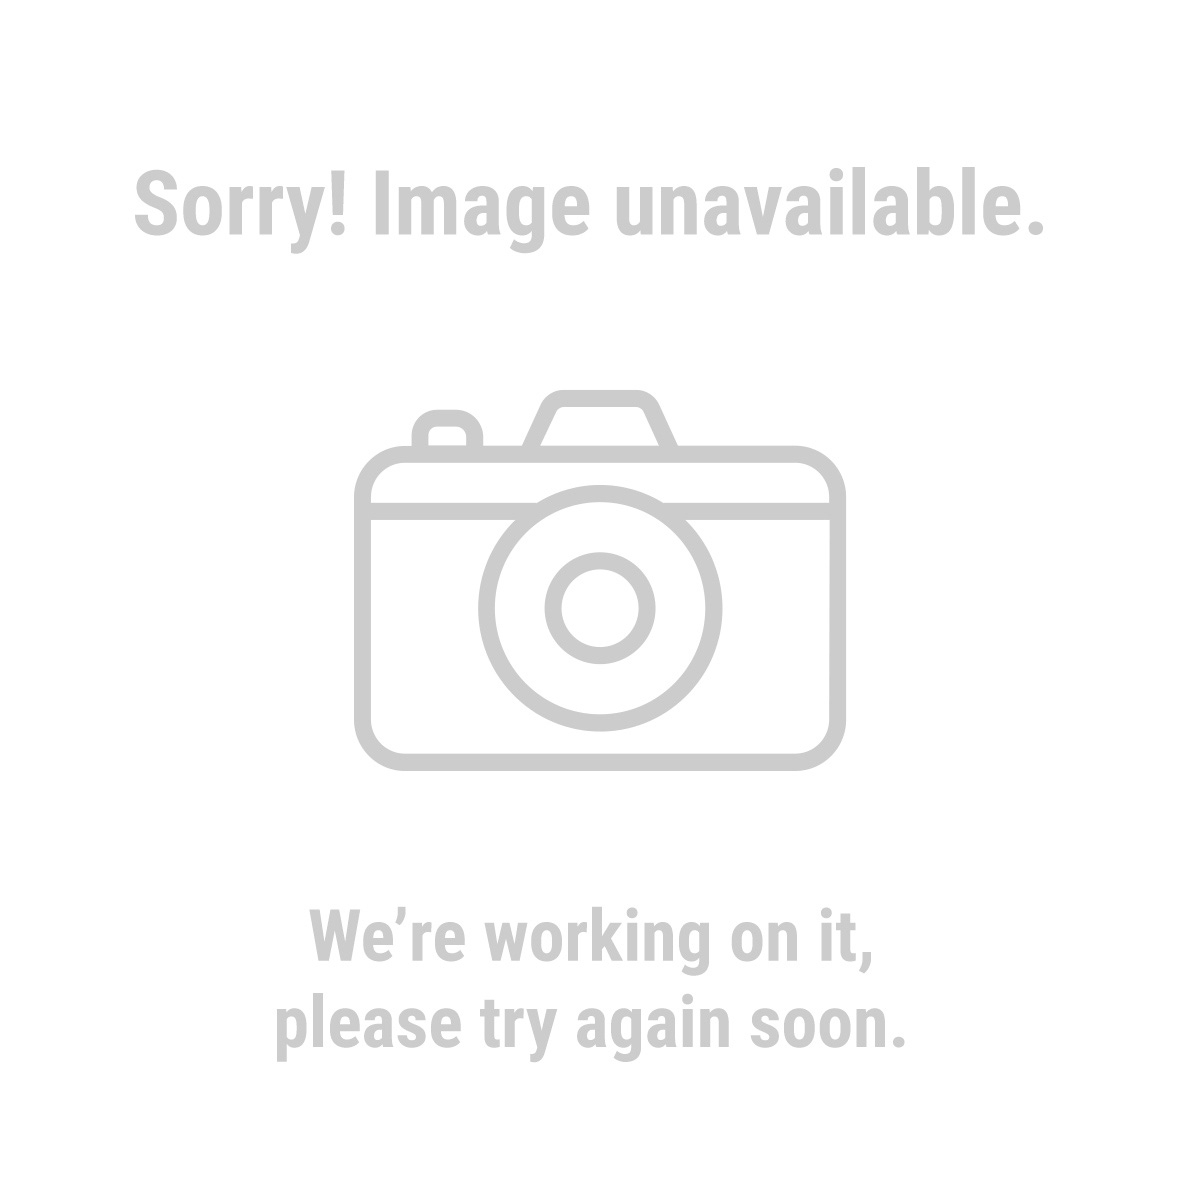 Warrior 69028 13 Piece Professional Spade Bit Set